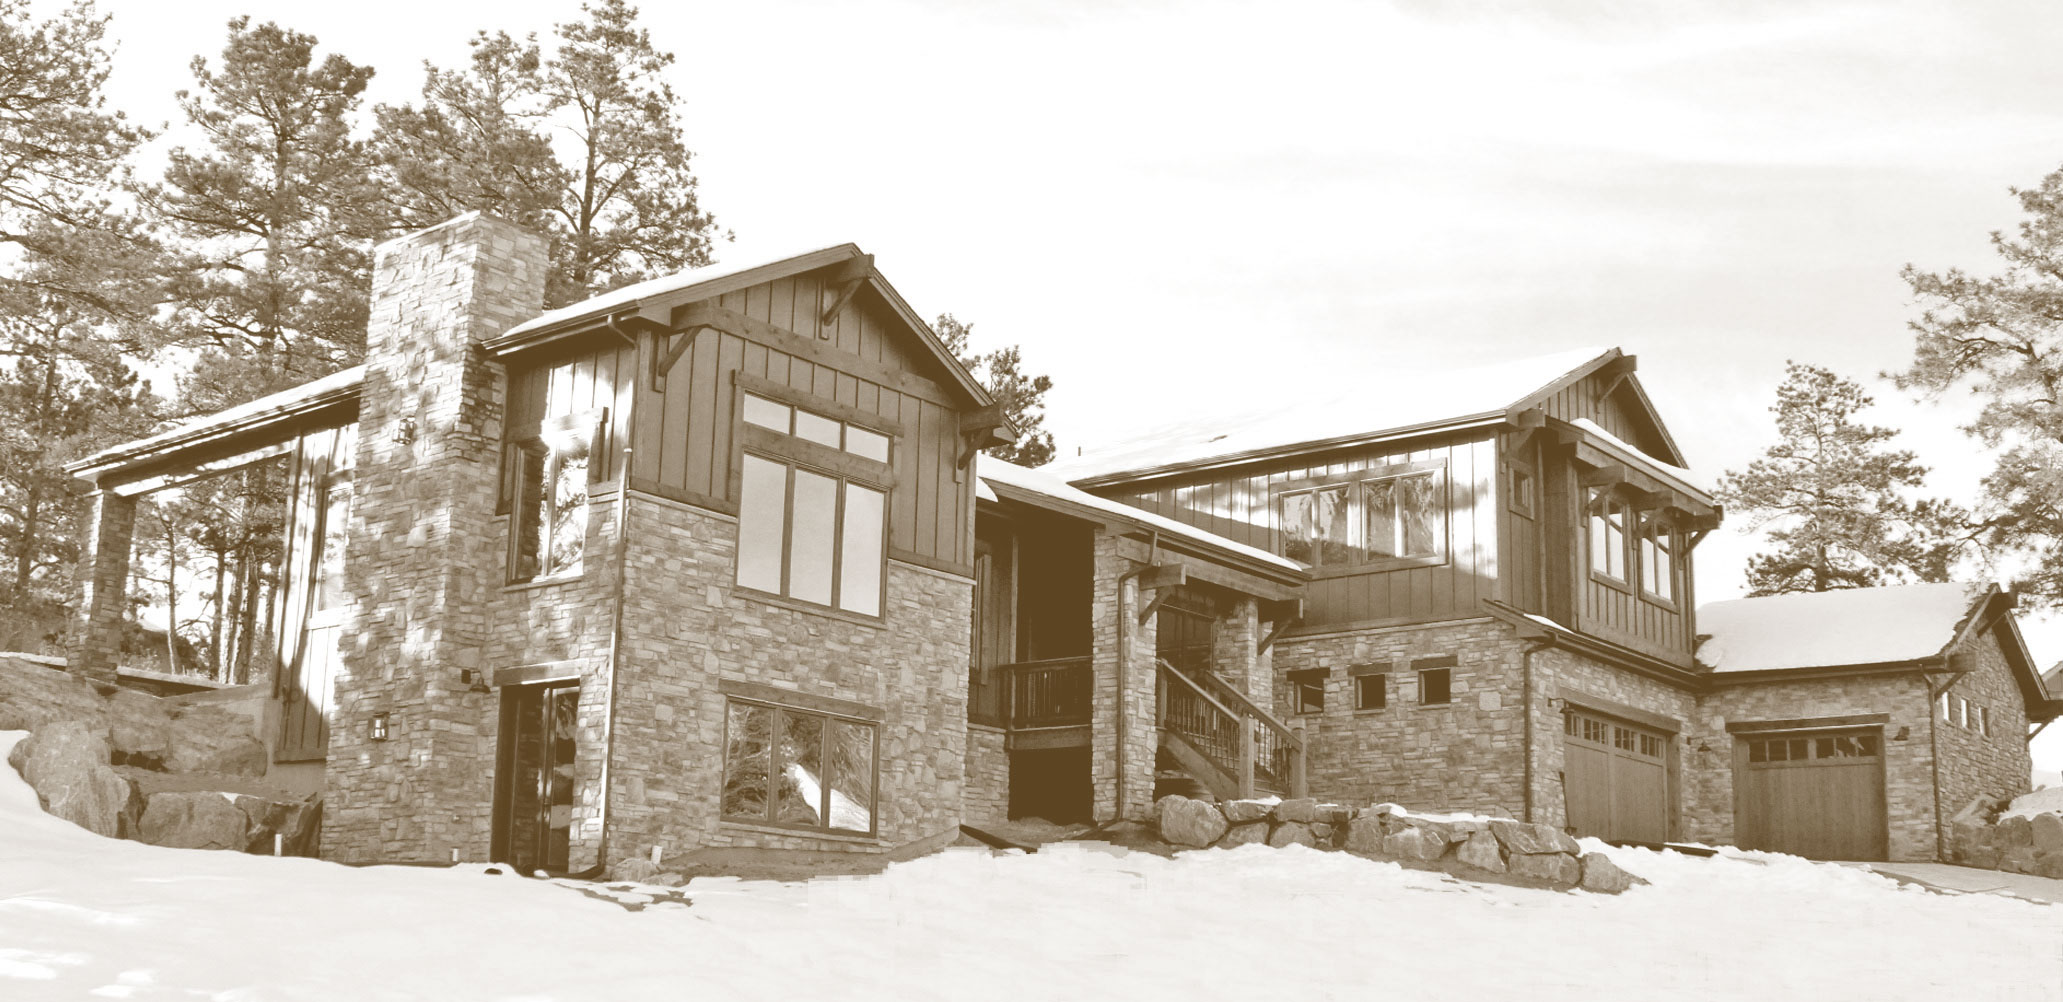 Aspect-Colorado-Home_Exterior_Duotone